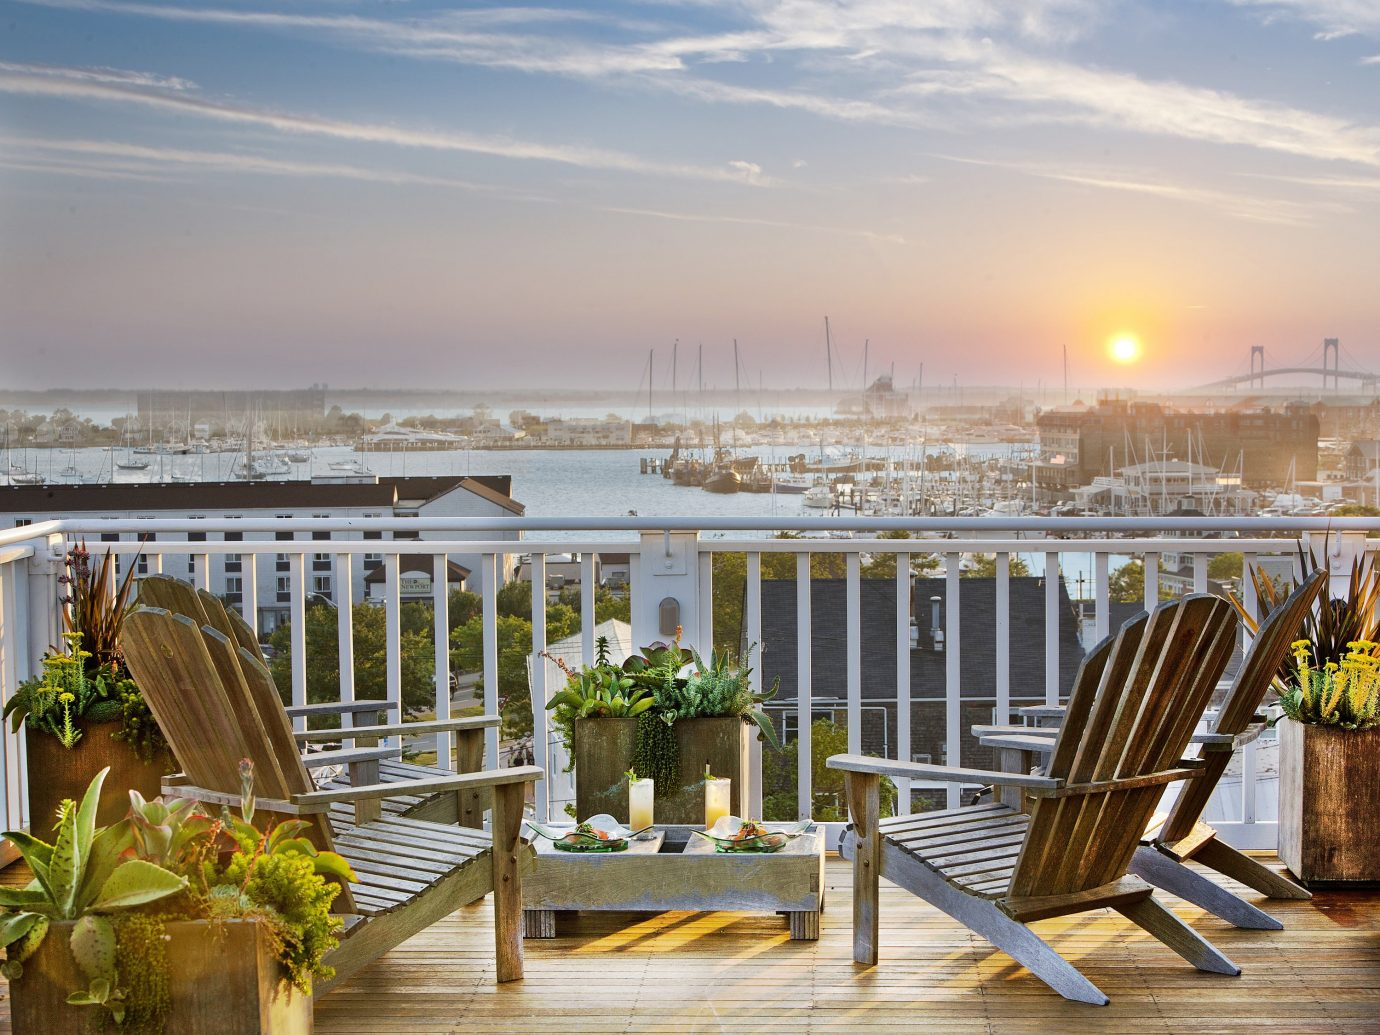 The Roof Deck at the Grace Vanderbilt, Newport